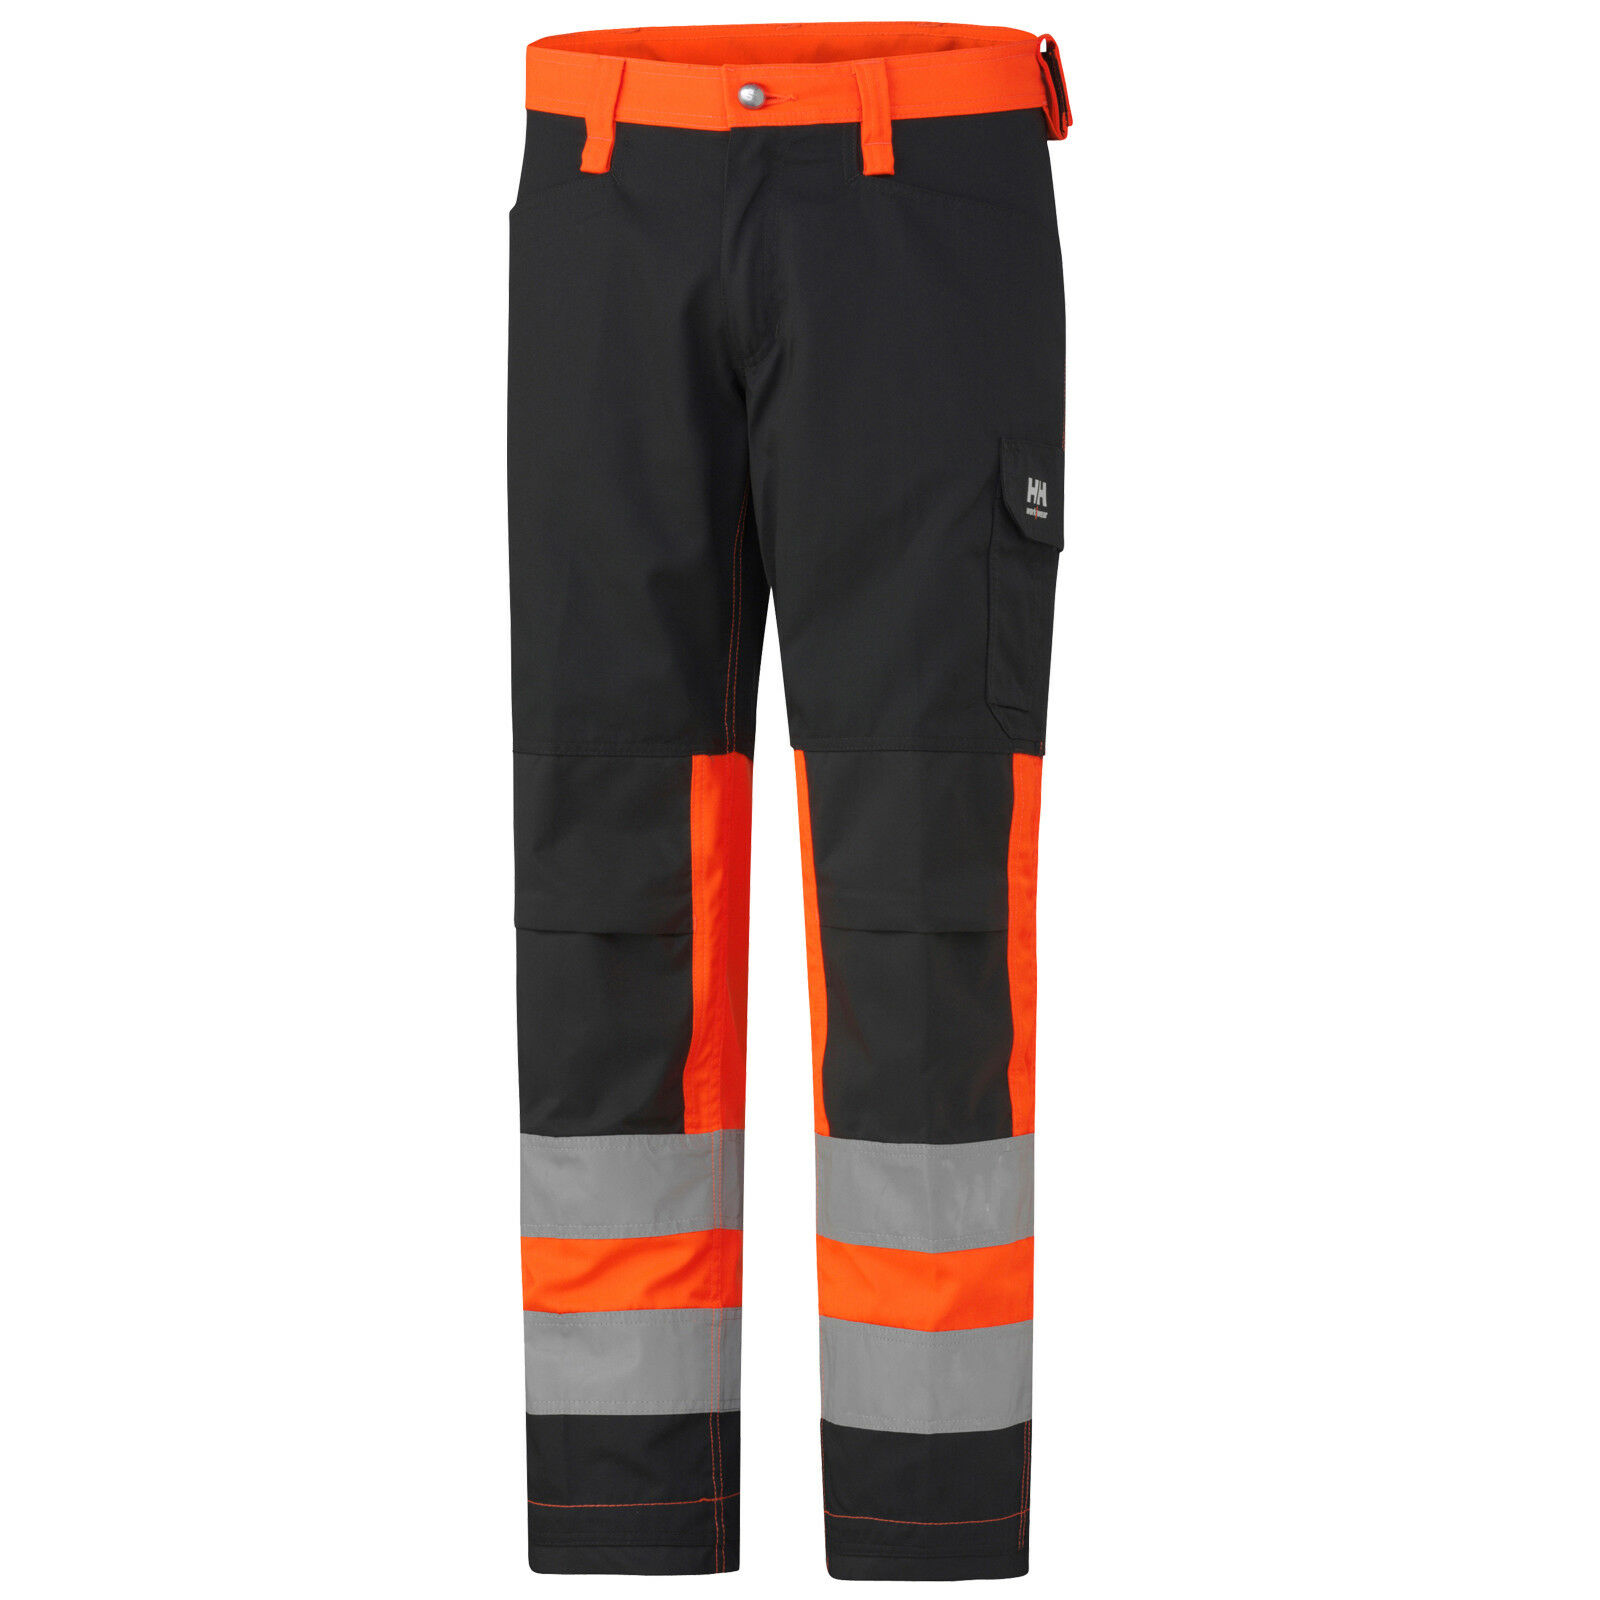 HELLY HANSEN WORKWEAR YORK PANTS HIGH VIS Orange 76457